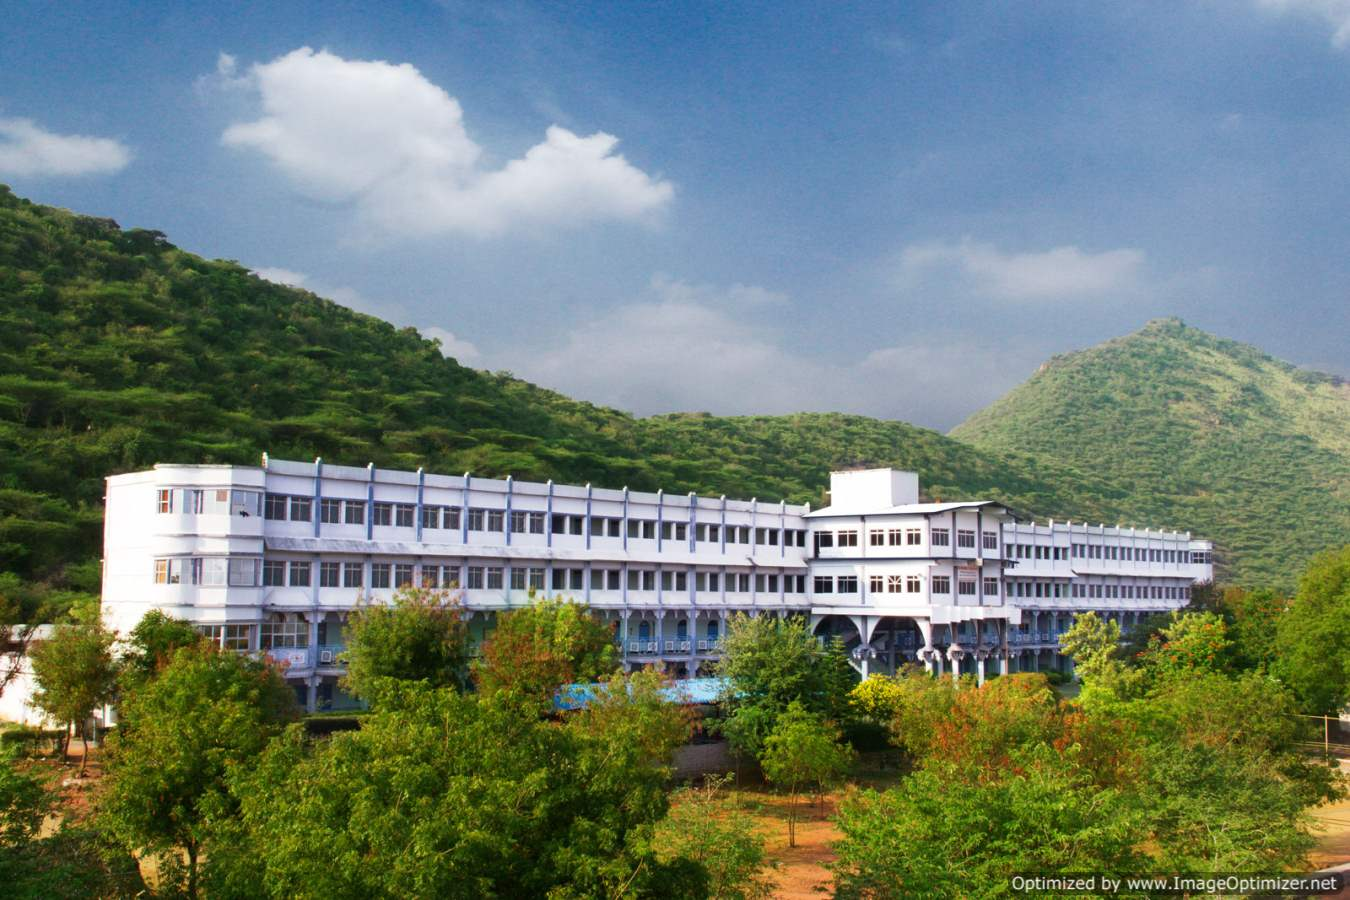 Christian College of Engineering and Technology, Dindigul